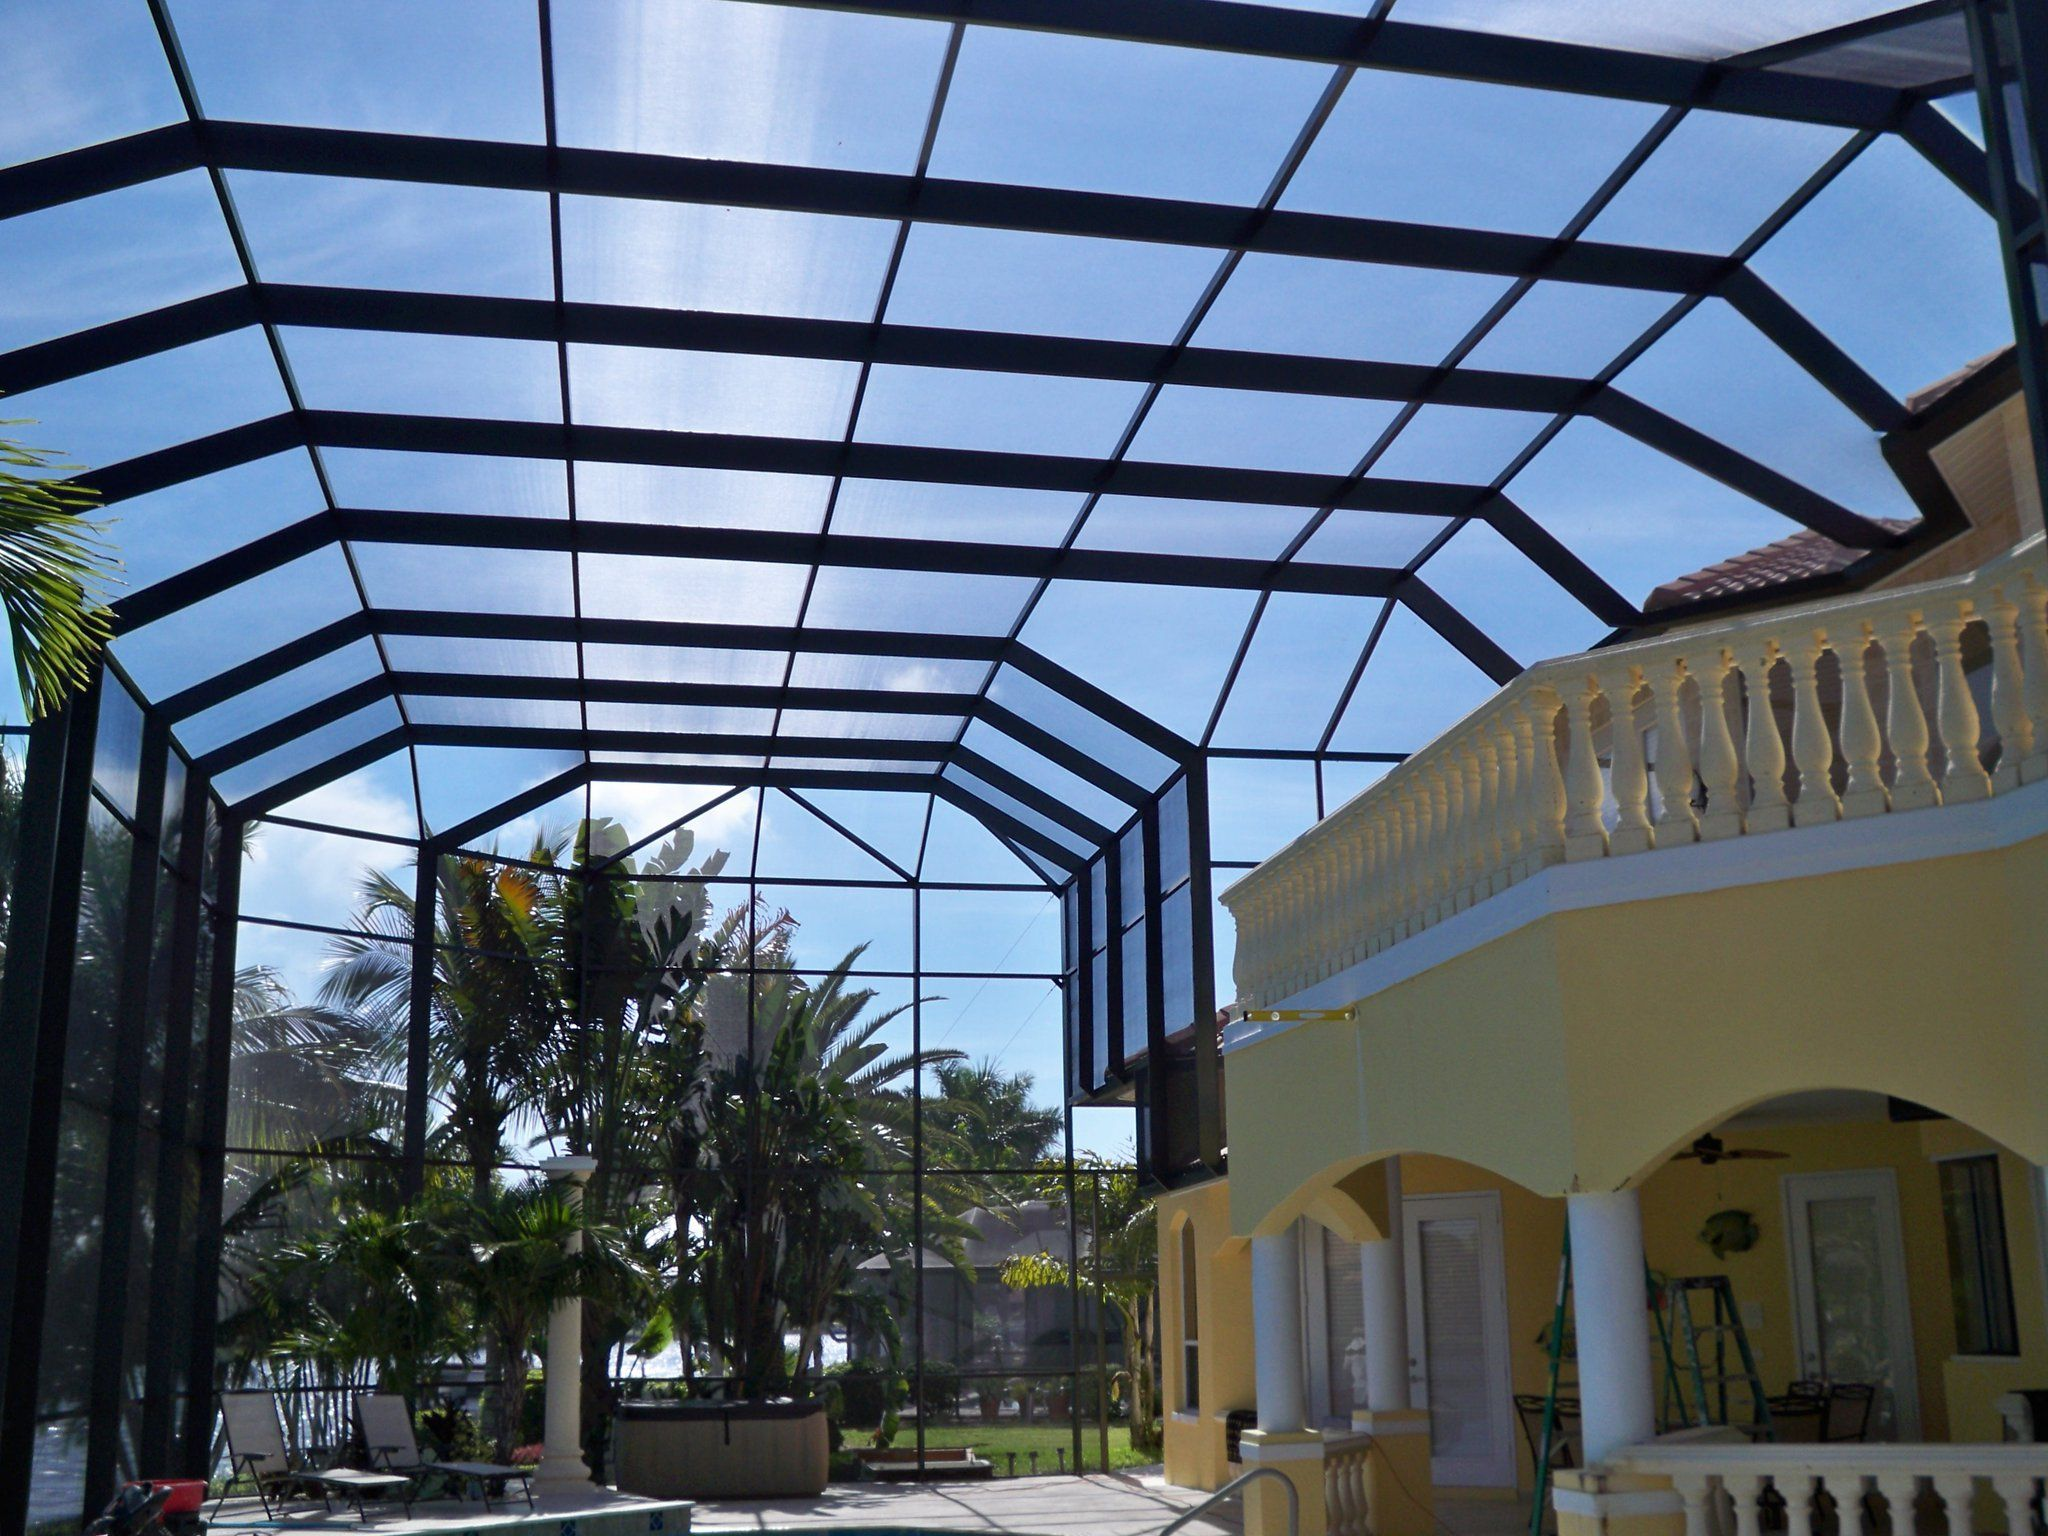 Commercial Screen Enclosures-Boca Raton Pool Screen Enclosure Installation and Patio Screen Repairs Services-We do screen enclosures, patios, pool screens, fences, aluminum roofs, professional screen building, Pool Screen Enclosures, Patio Screen Enclosures, Fences & Gates, Storm Shutters, Decks, Balconies & Railings, Installation, Repairs, and more